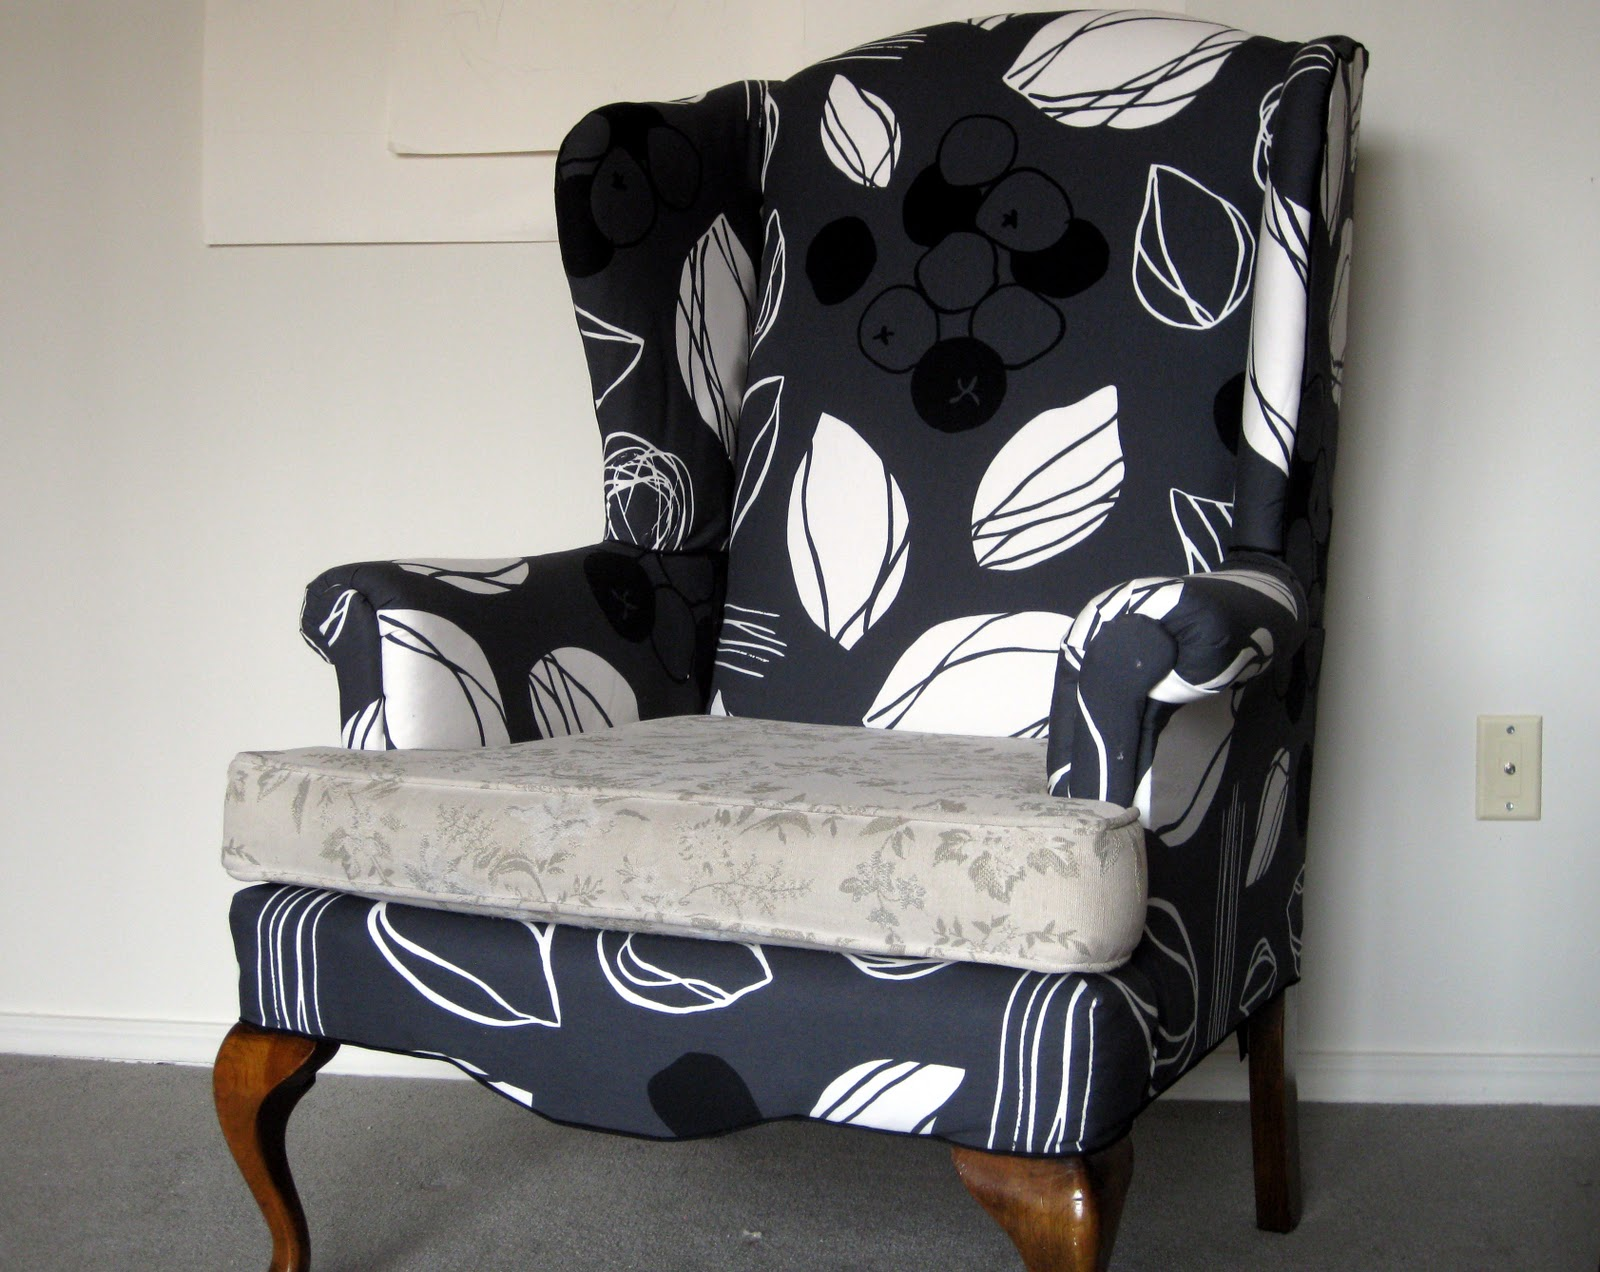 Reupholster wingback chair - Wingback Chair Re Upholstery Project Recovering The Chair